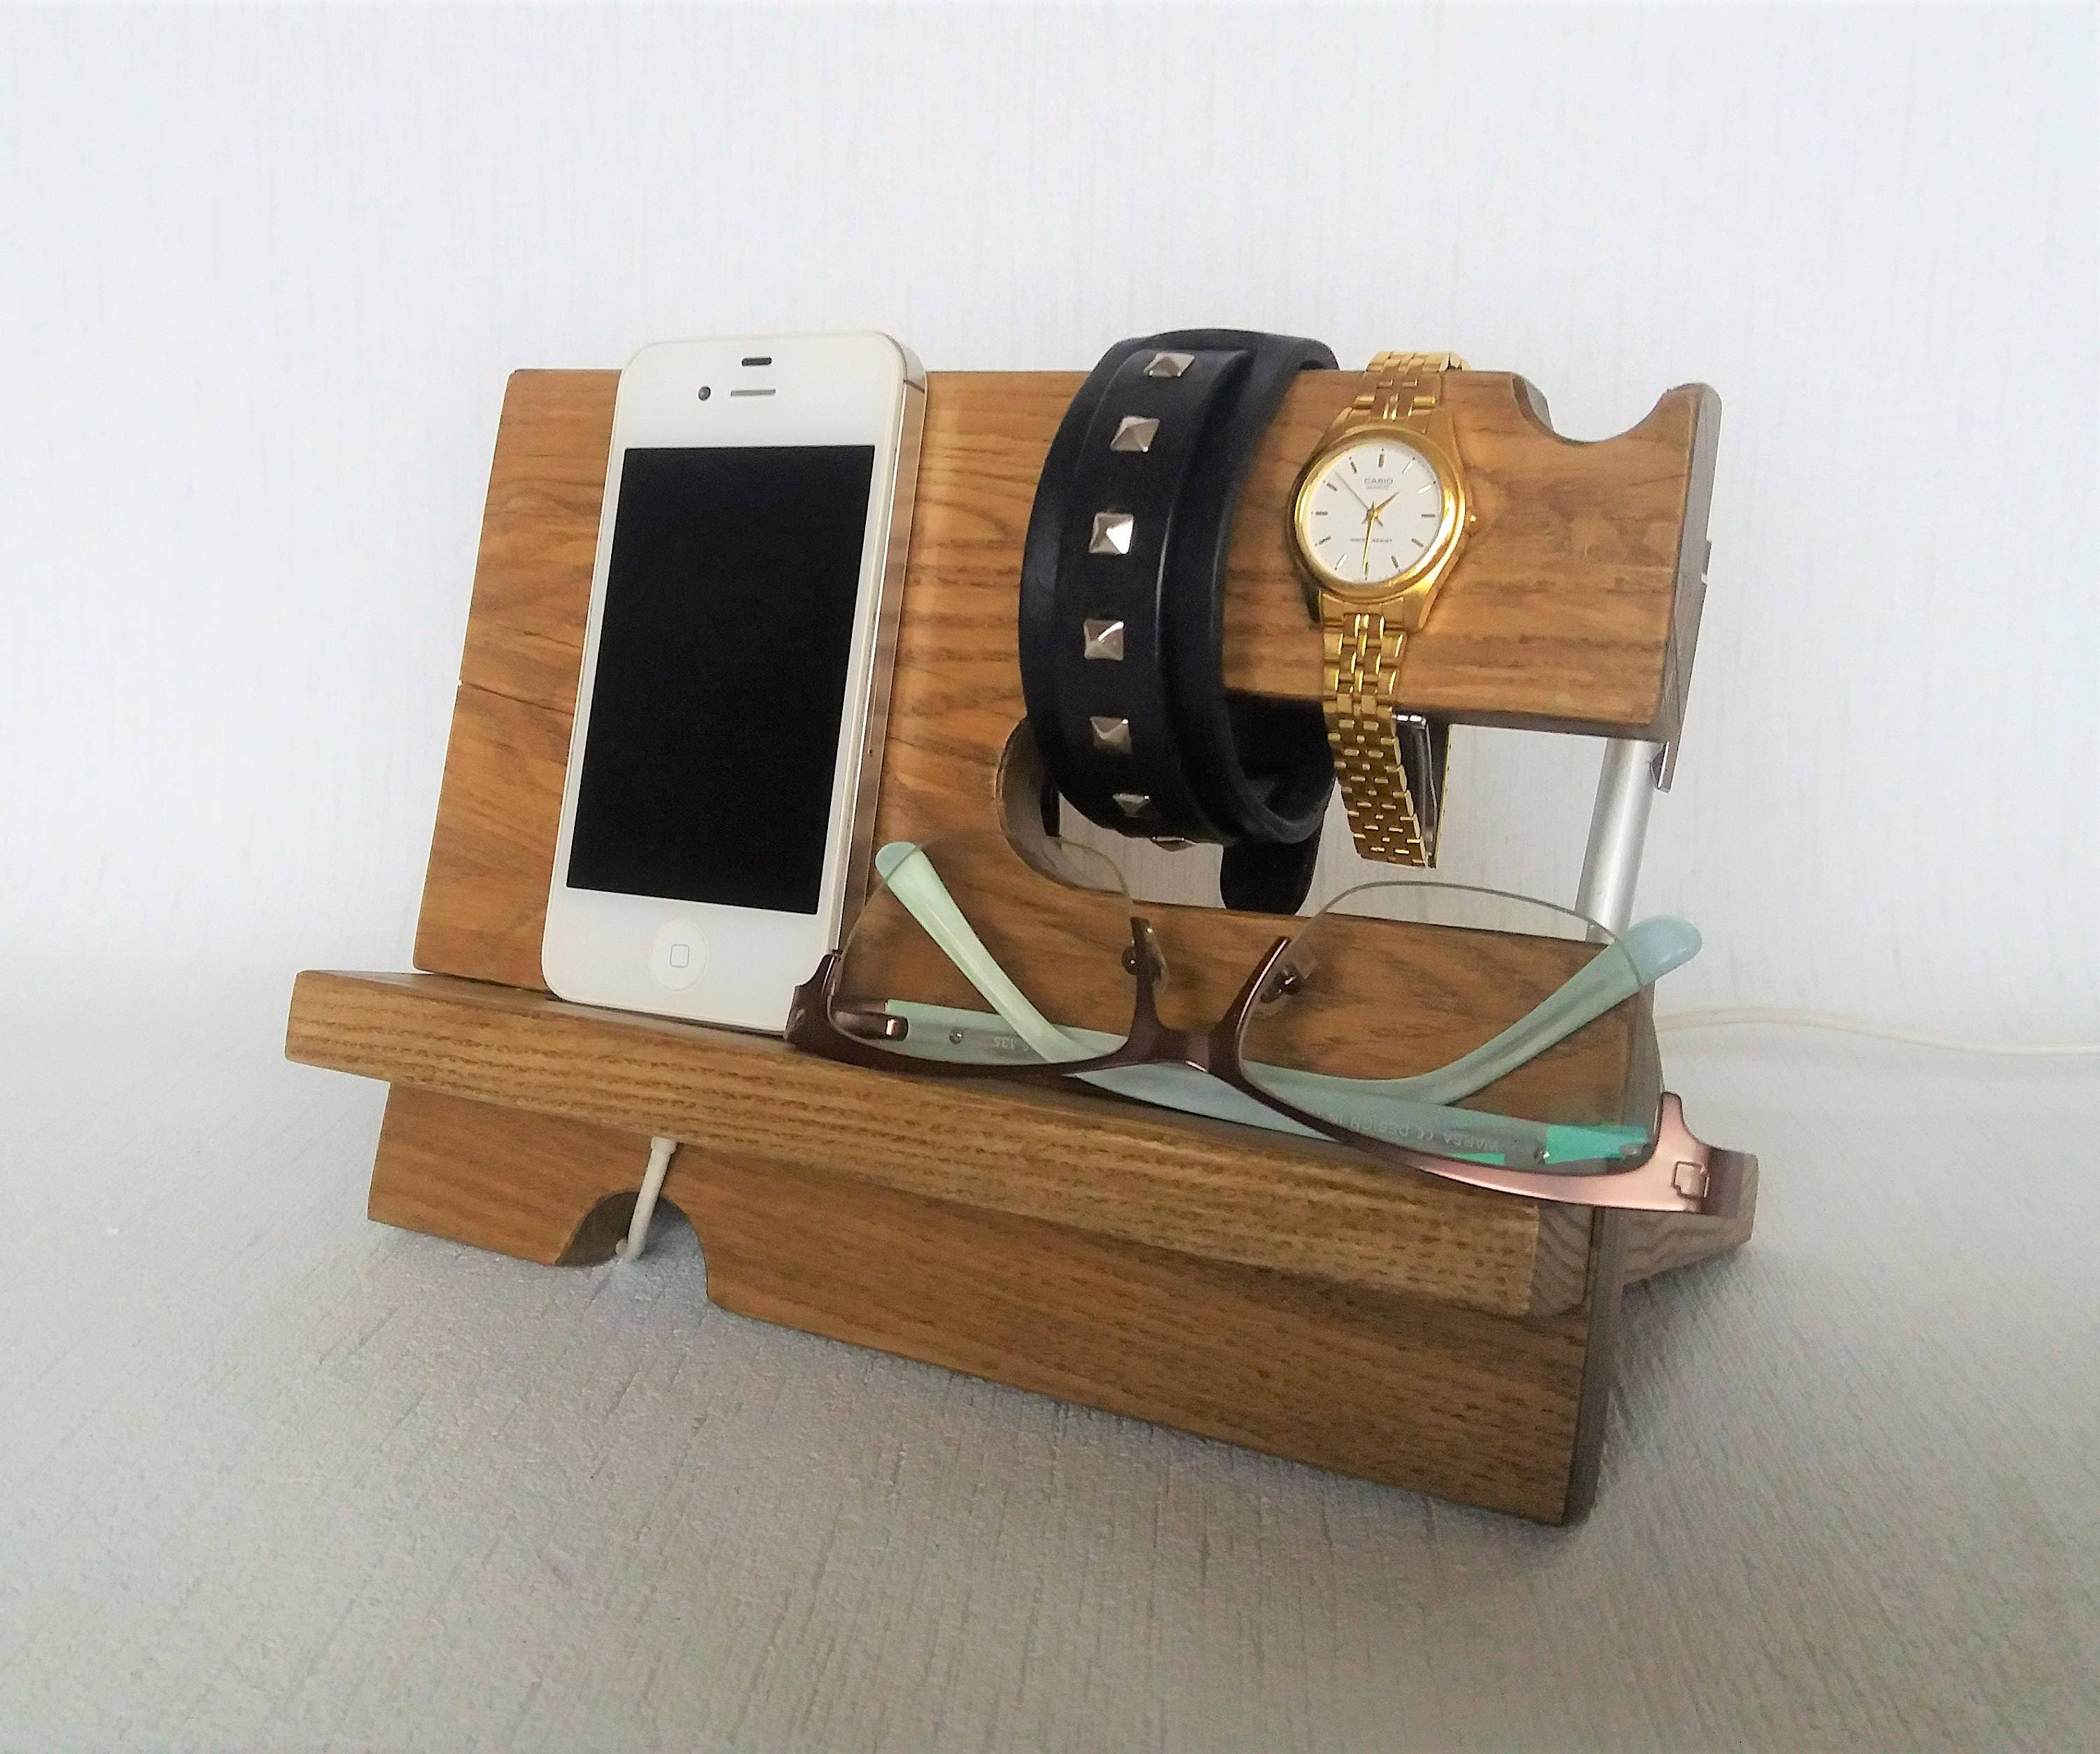 Mens Bedside Organizer Ash Wood Docking Station Wood Desk Organizer Bedside Charging Station Men Nightstand Organizer Iphone Android Stand